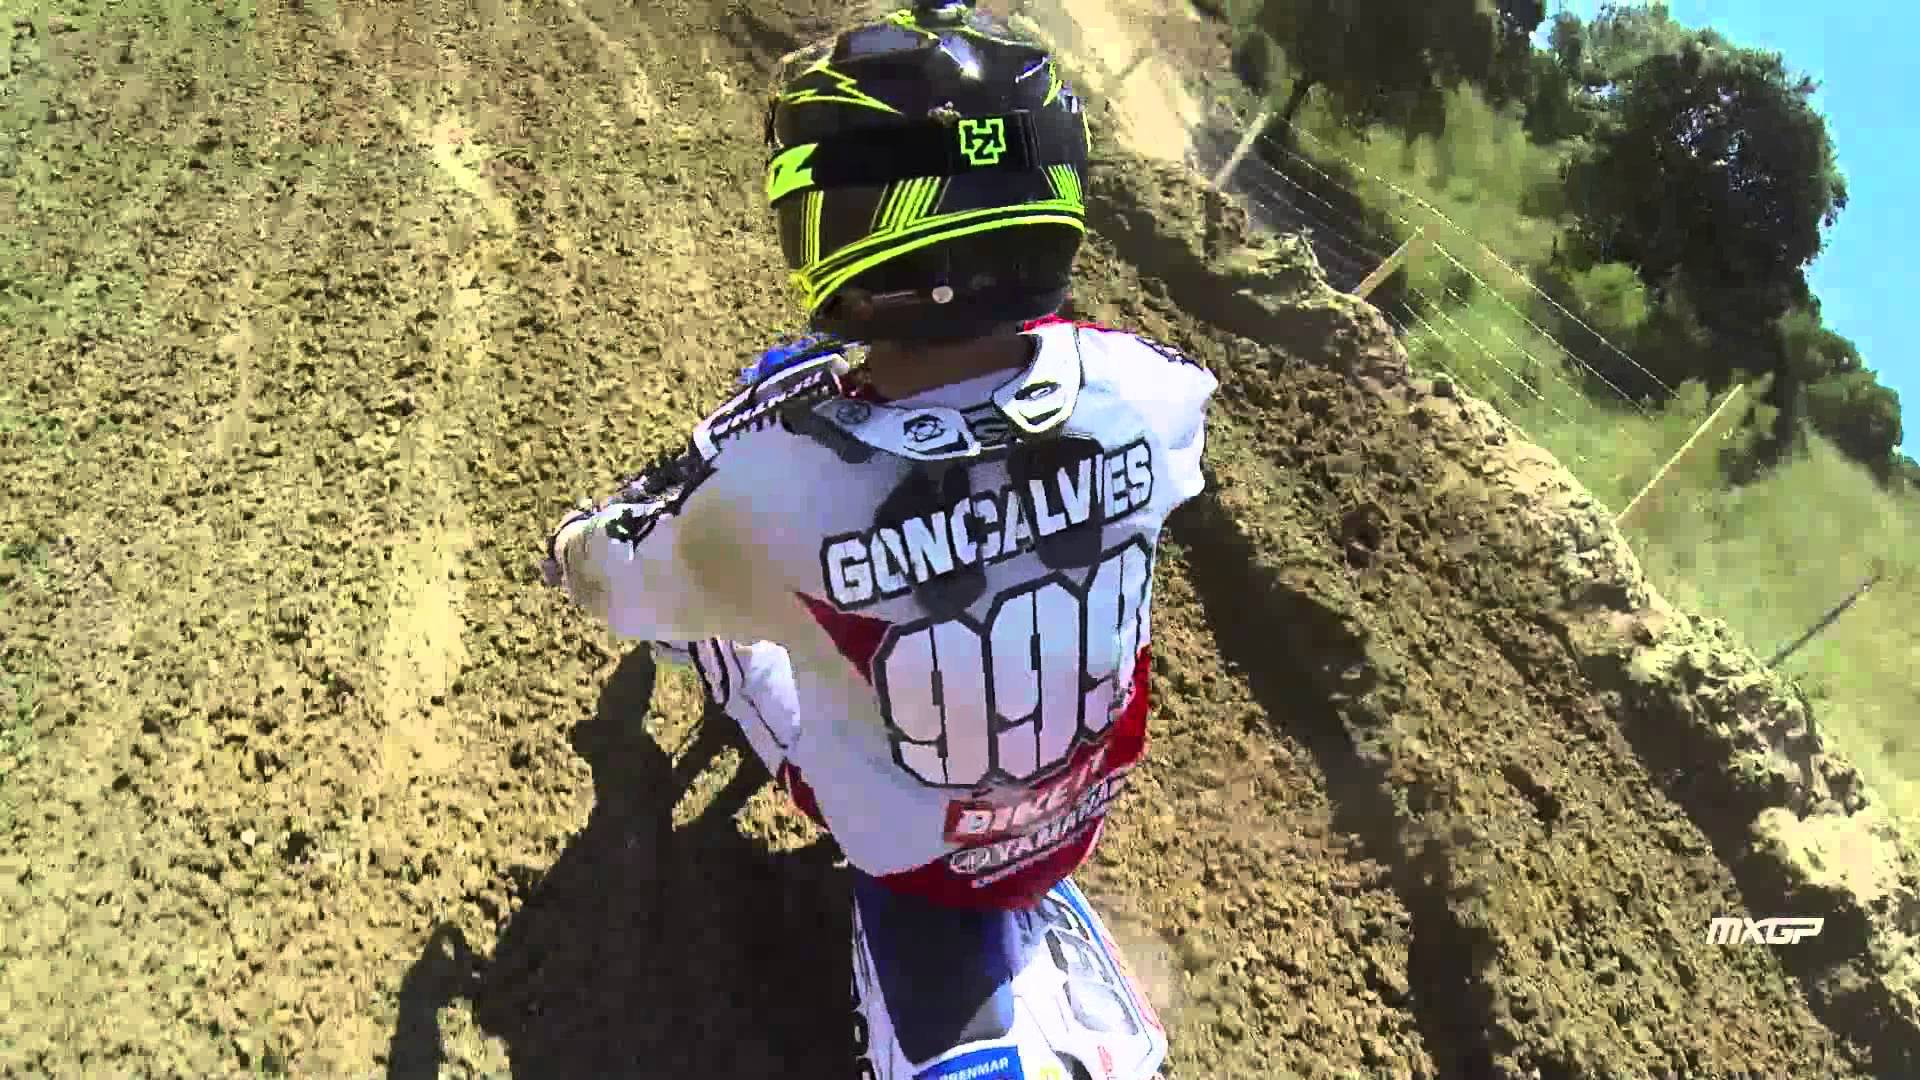 MXGP 2014 GoPro Best Shots - FIM Motocross World Championship